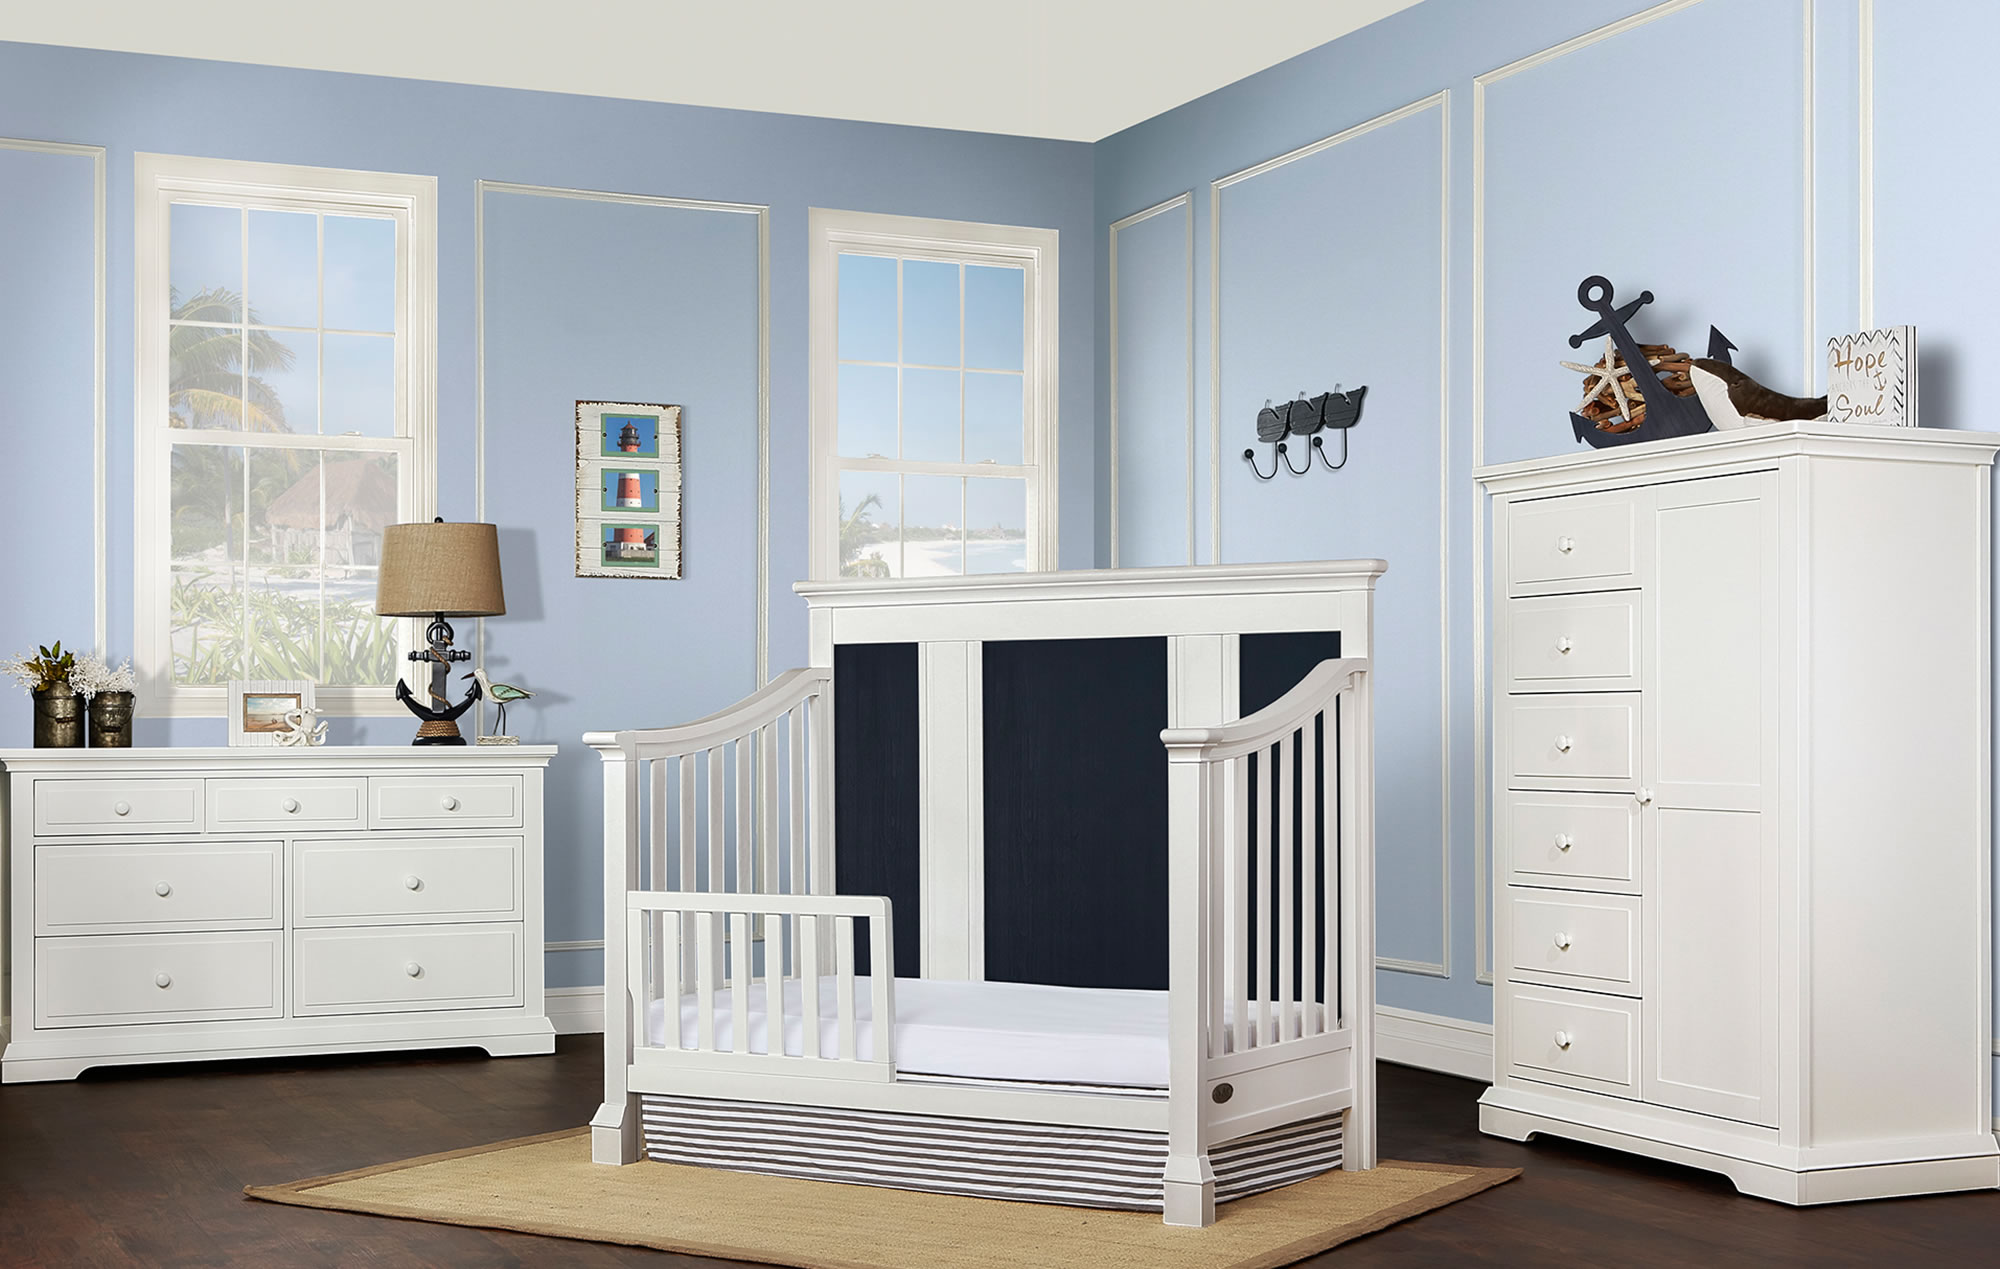 842-WDN Evolur Parker Toddler Bed RS1